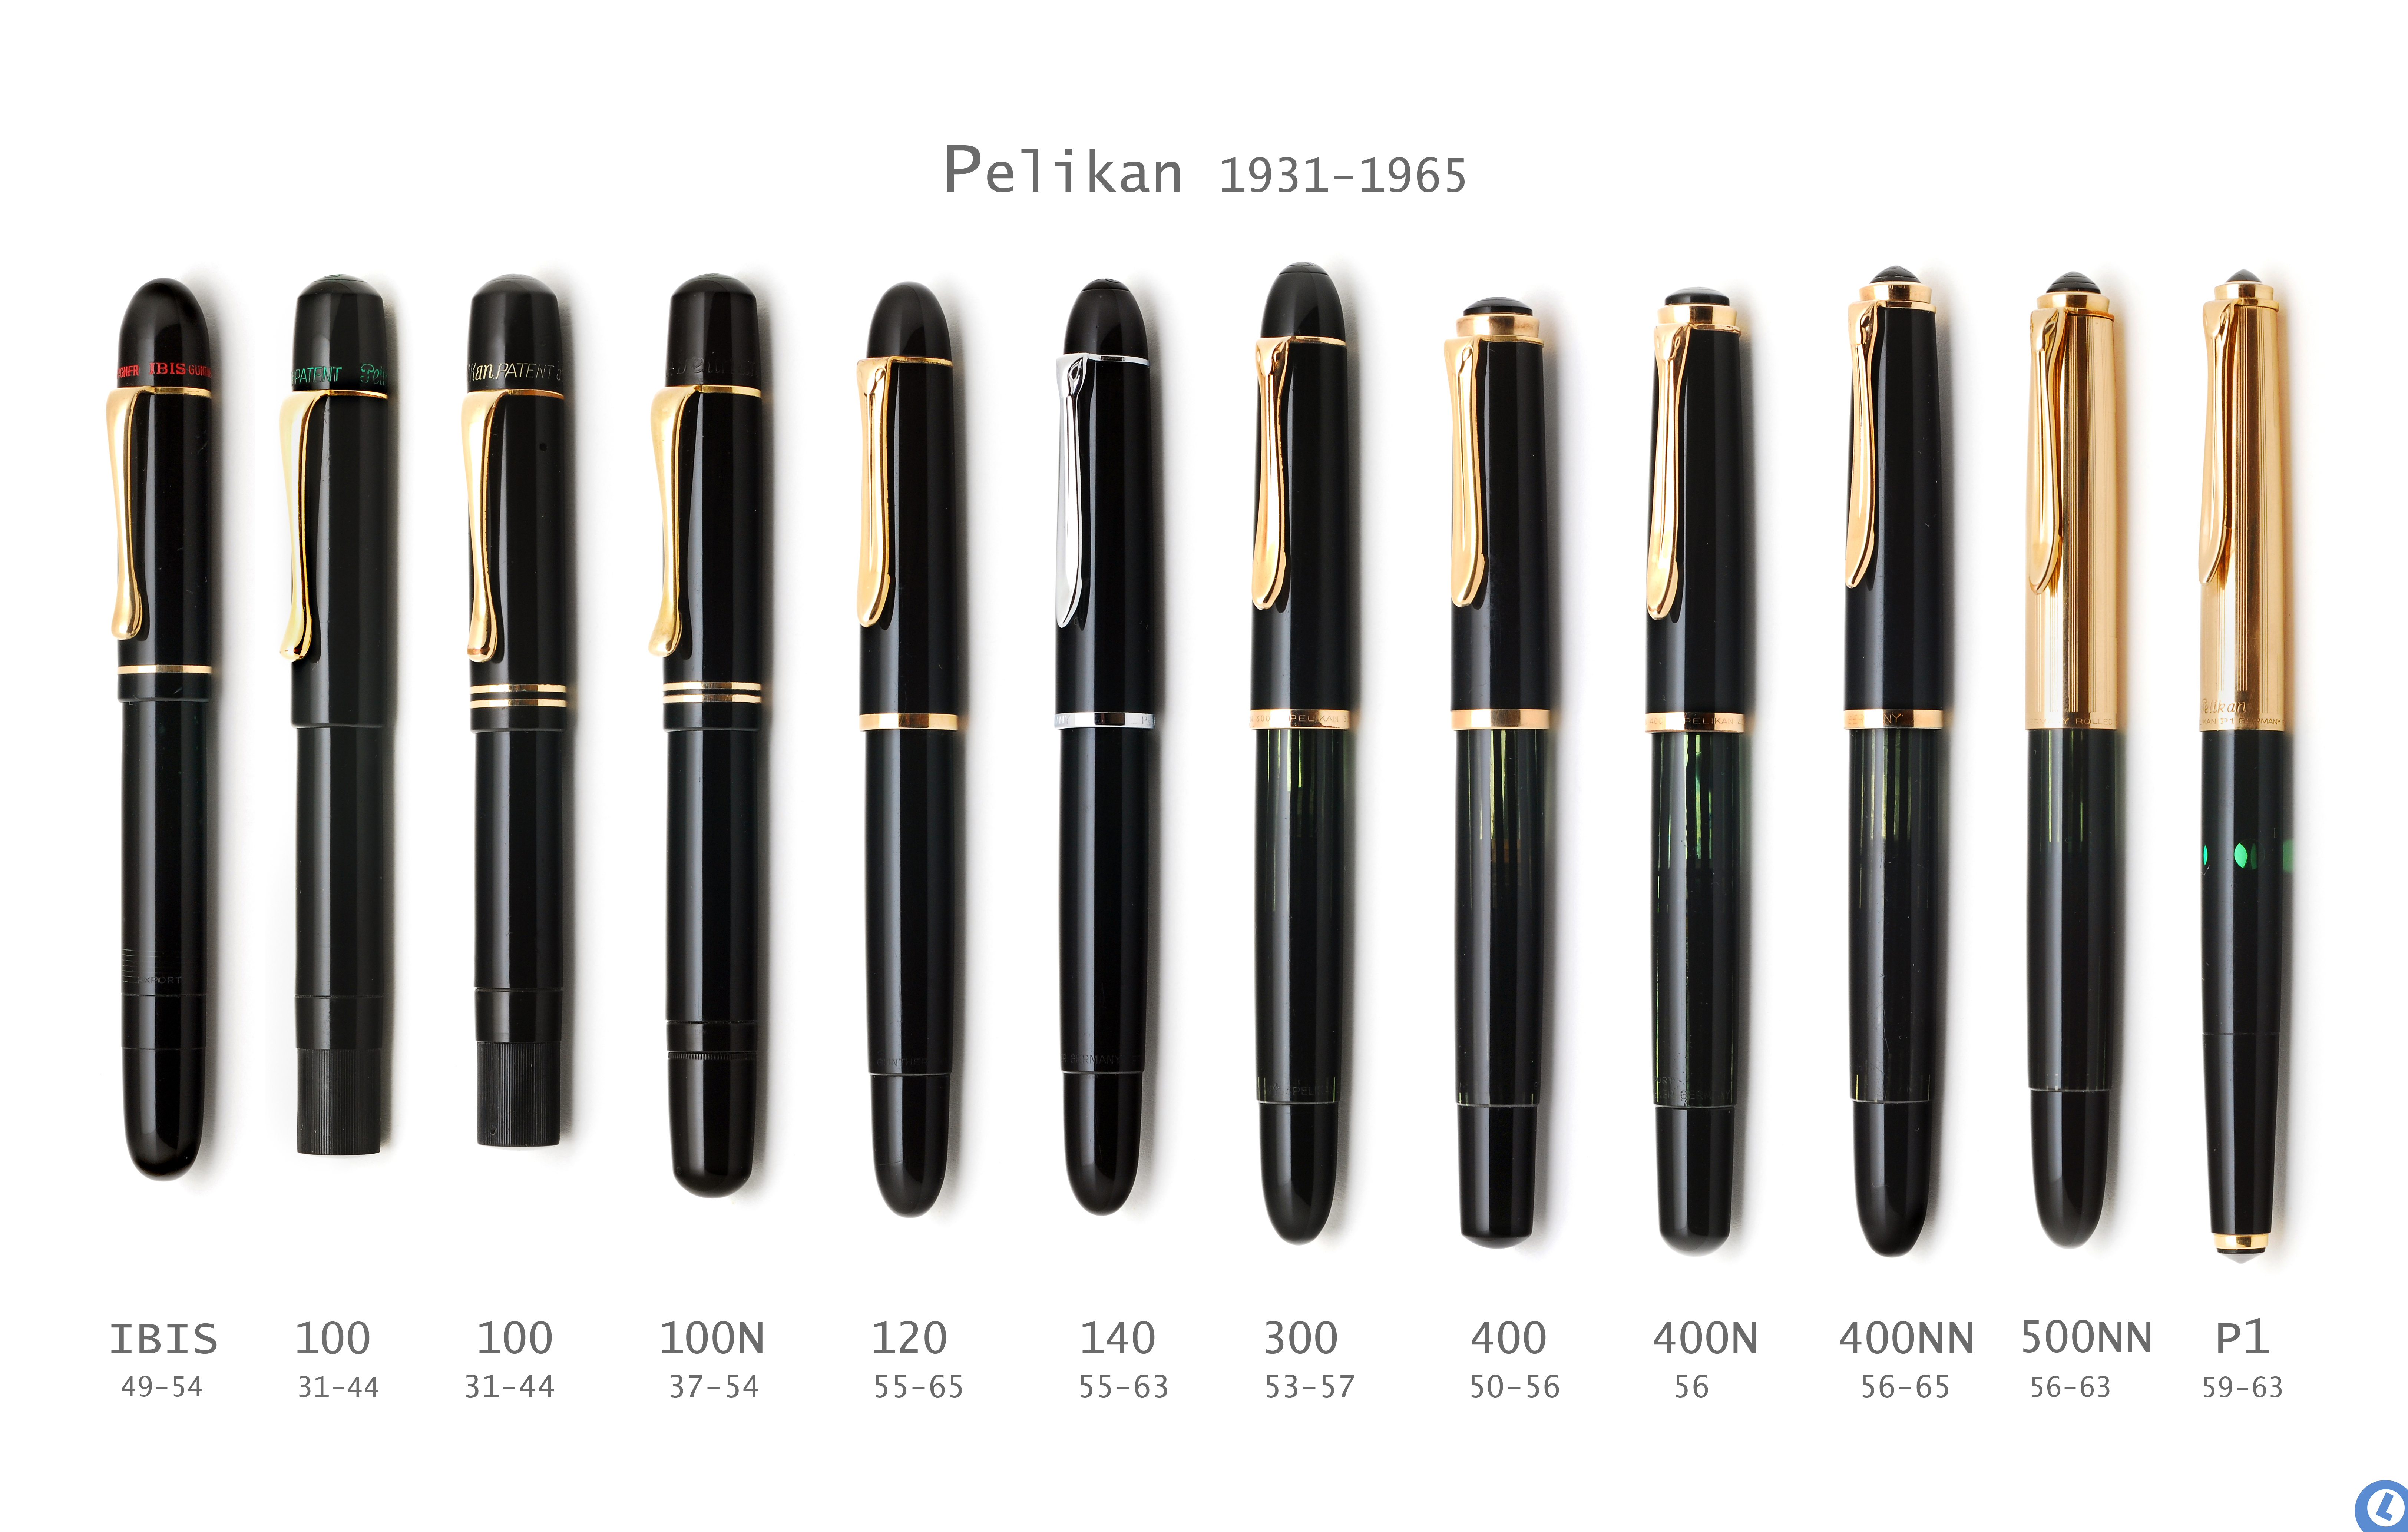 20 German Pens From The 50s 60s That Show Pervasiveness Of Pen Each Includes 1 Ball Point And Fountain As Diagram 6946713950 30027ddec5 O